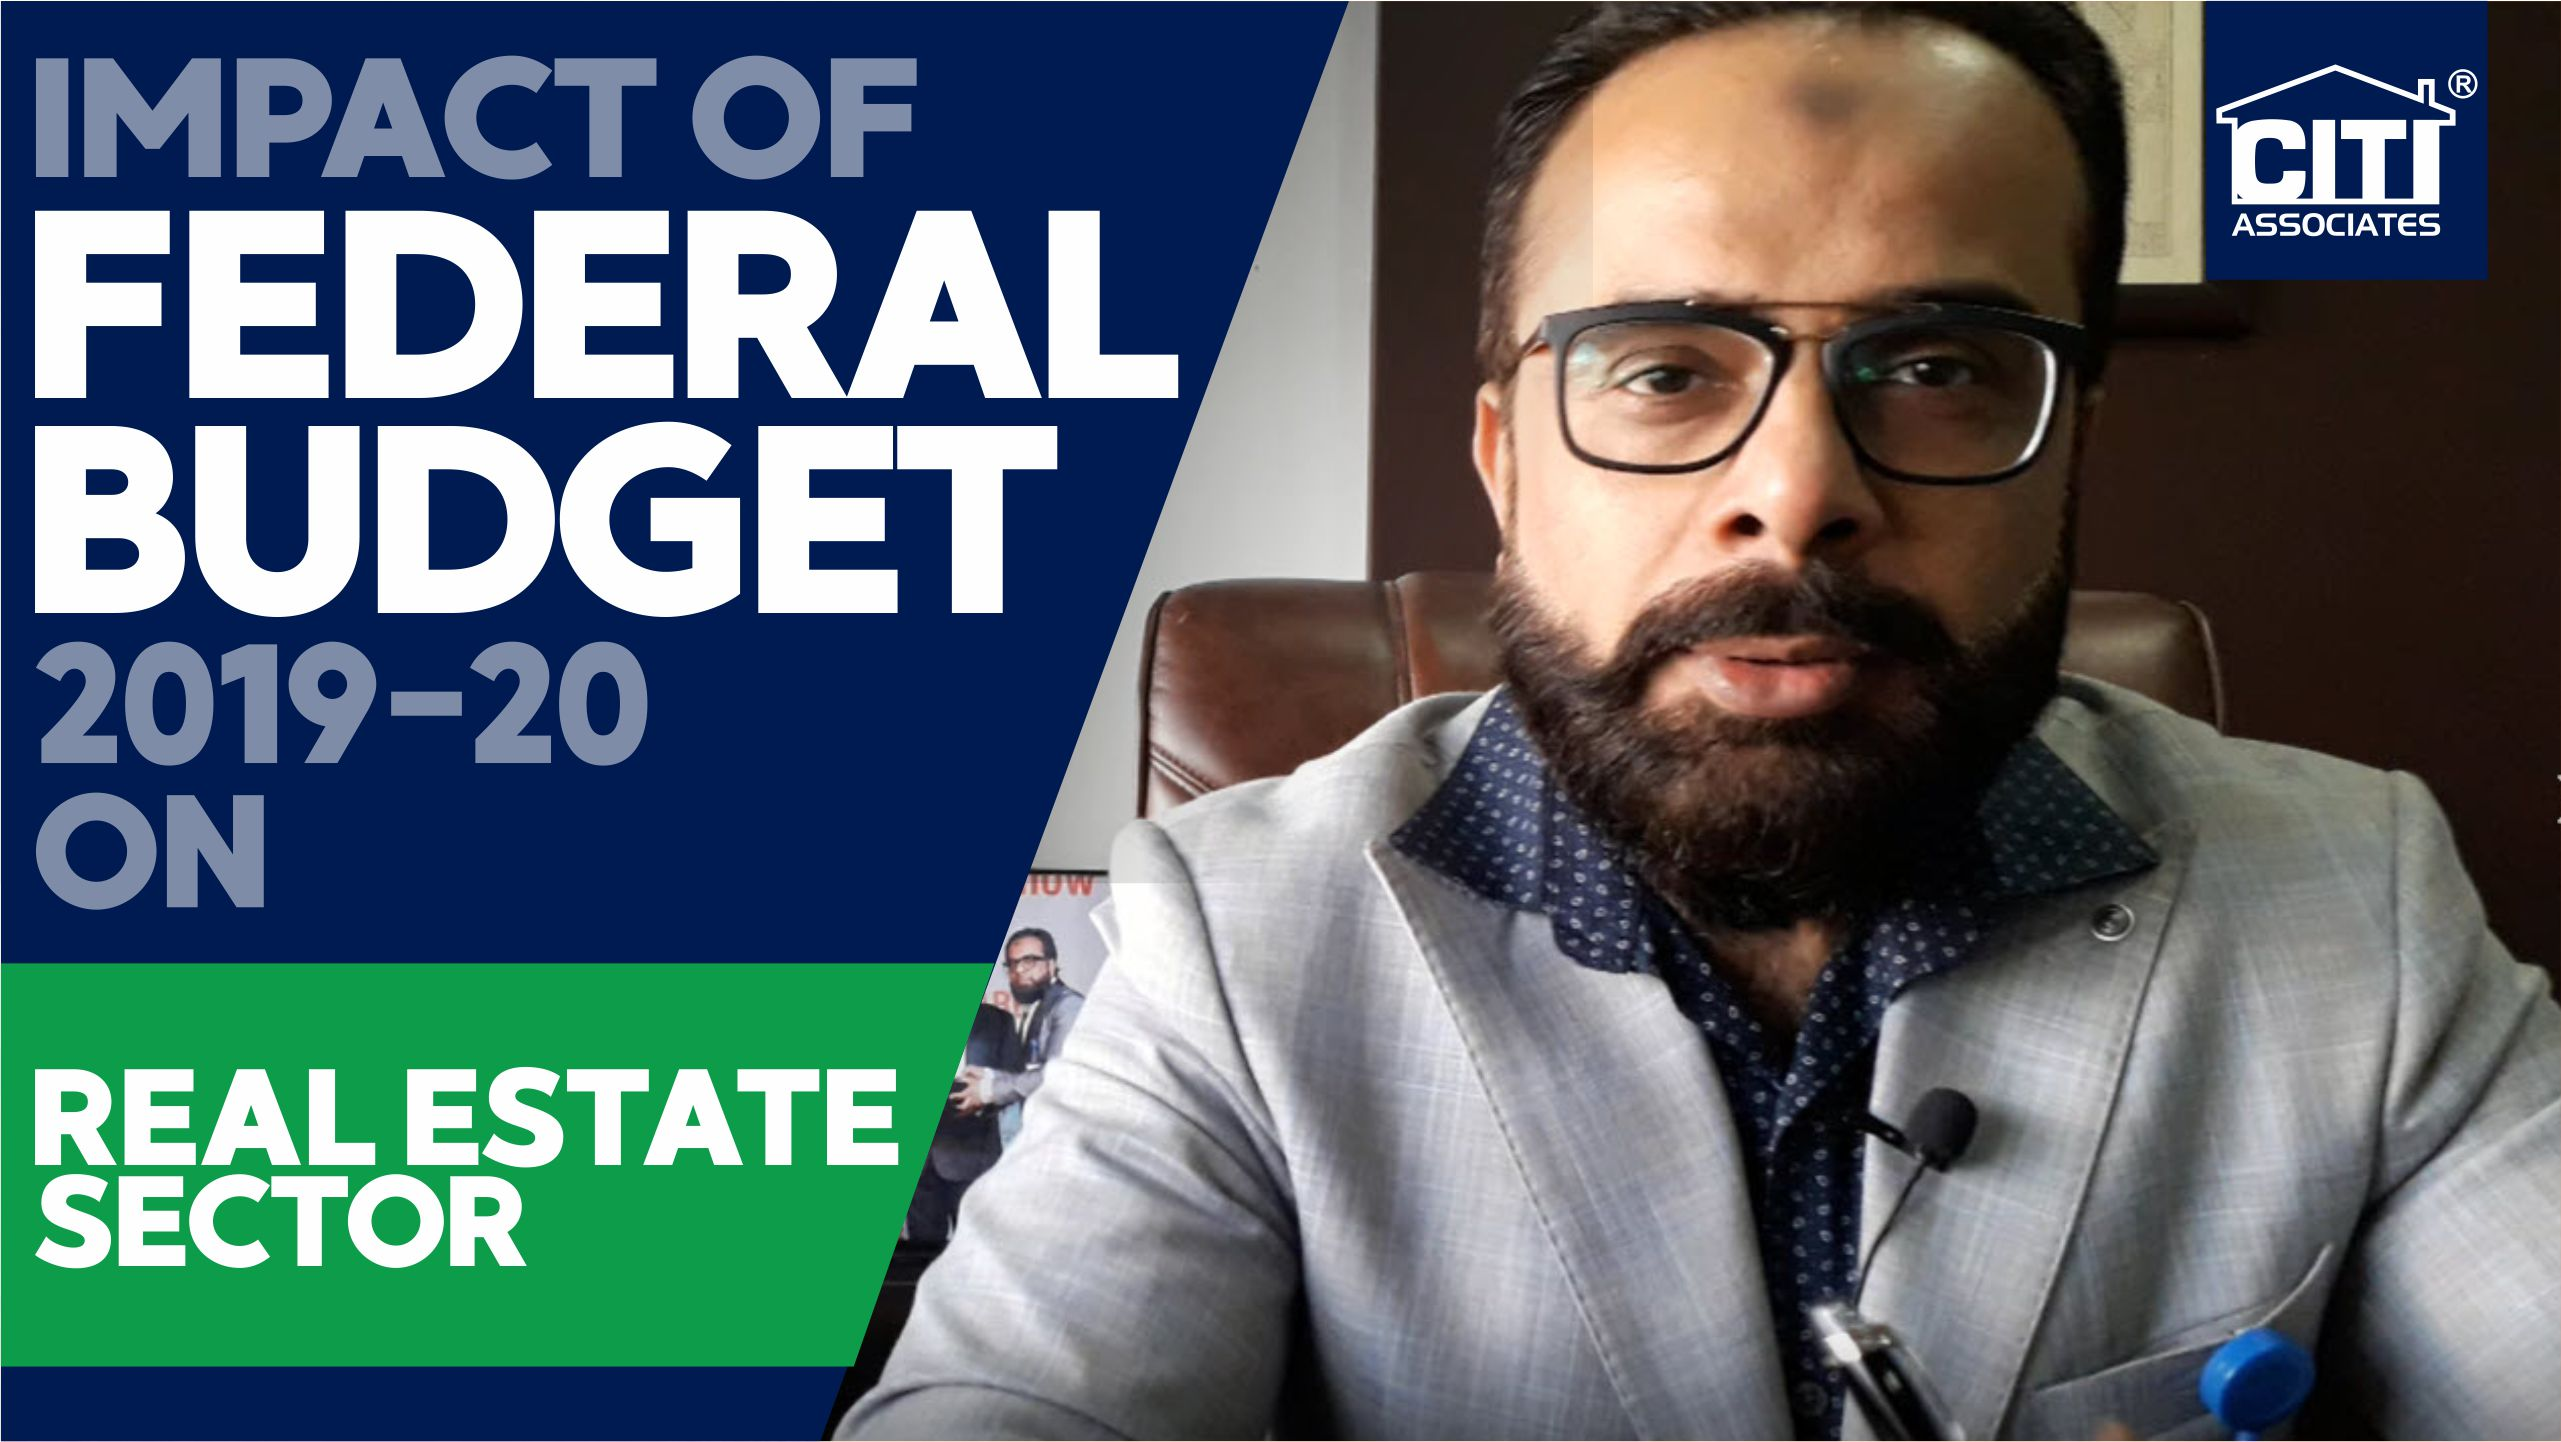 Impact of Federal Budget 2019-20 on Real Estate Sector by Muhammad Shafi Jakvani